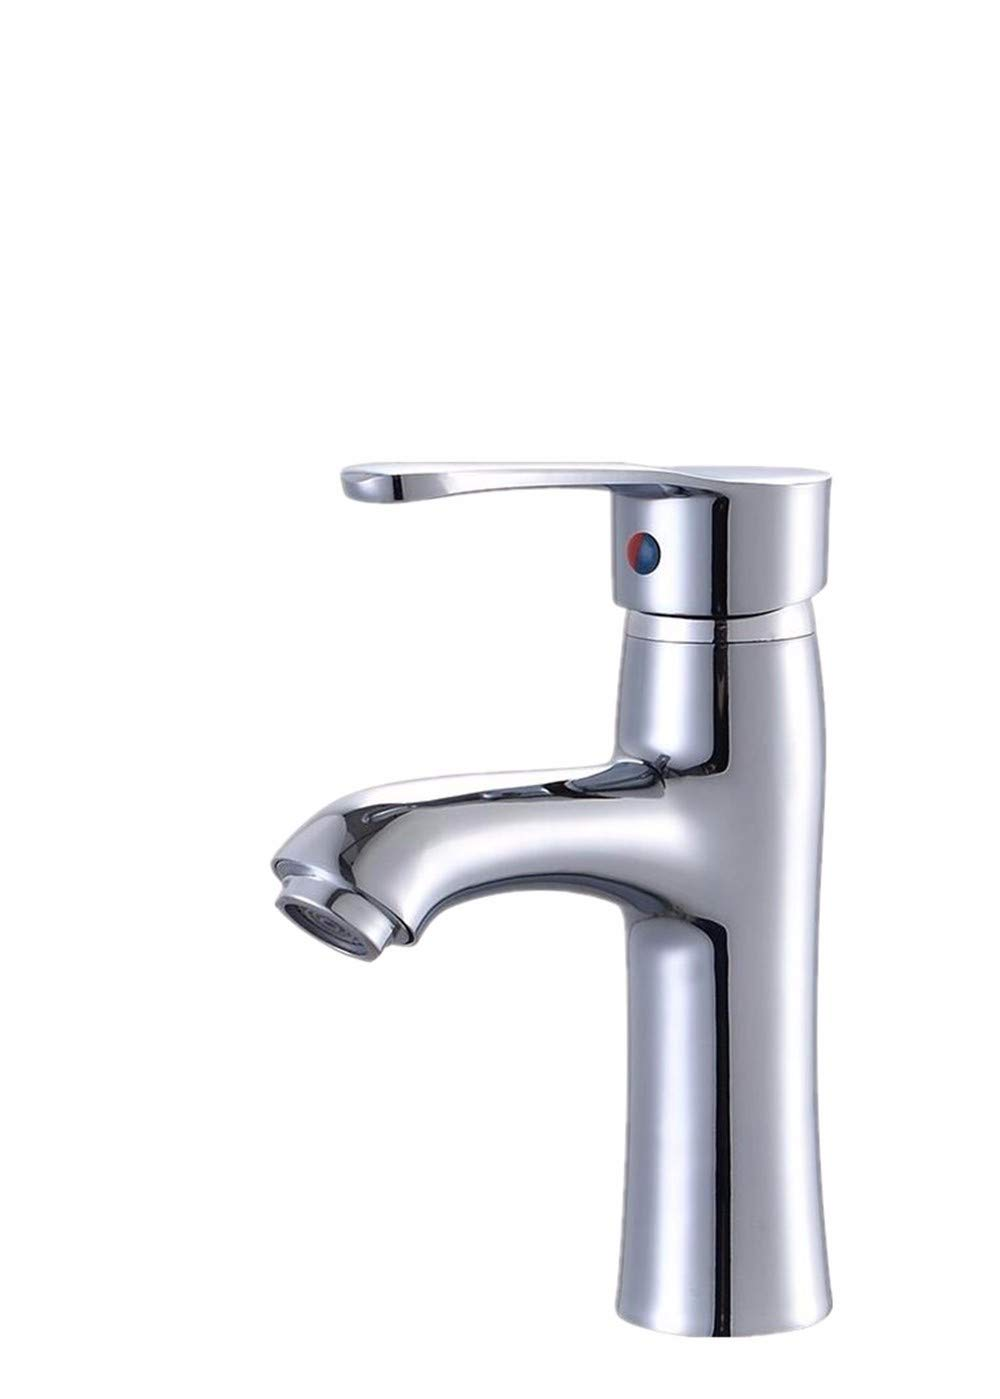 LYBSD Bathroom Sink Taps Kitchen Faucet Bathroom Fashion Sink Hot And Cold Dishes.